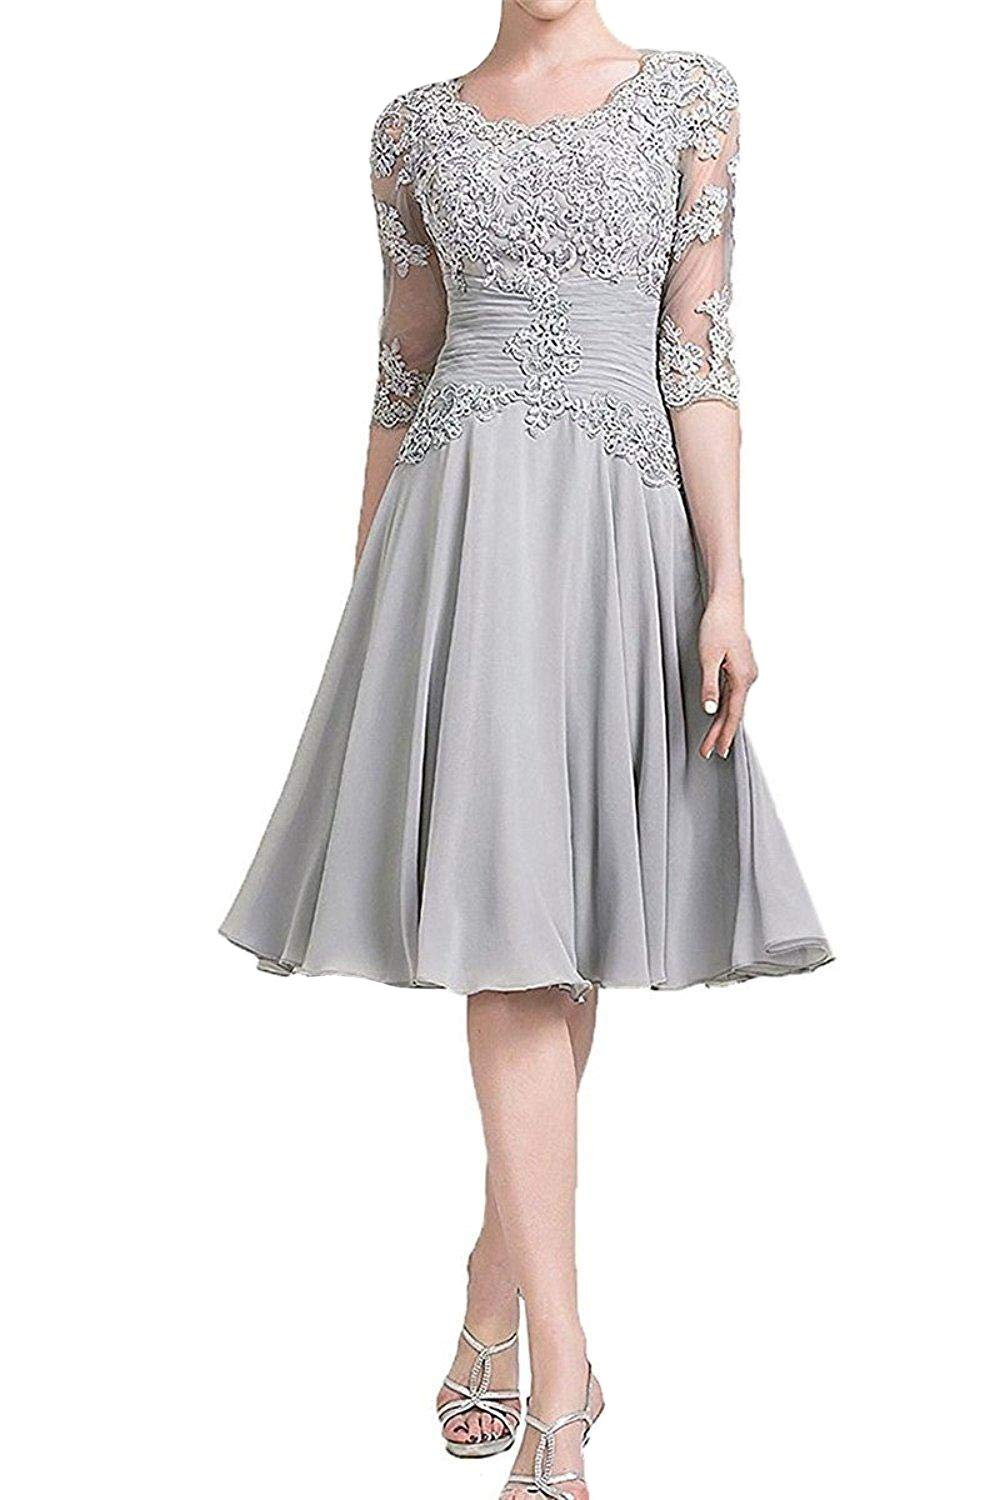 Formal Wedding Dresses.Jingdress Women Appliques Mother Of The Bride Dresses Knee Length 1 2 Sleeve Wedding Evening Gowns With Pleats Grey